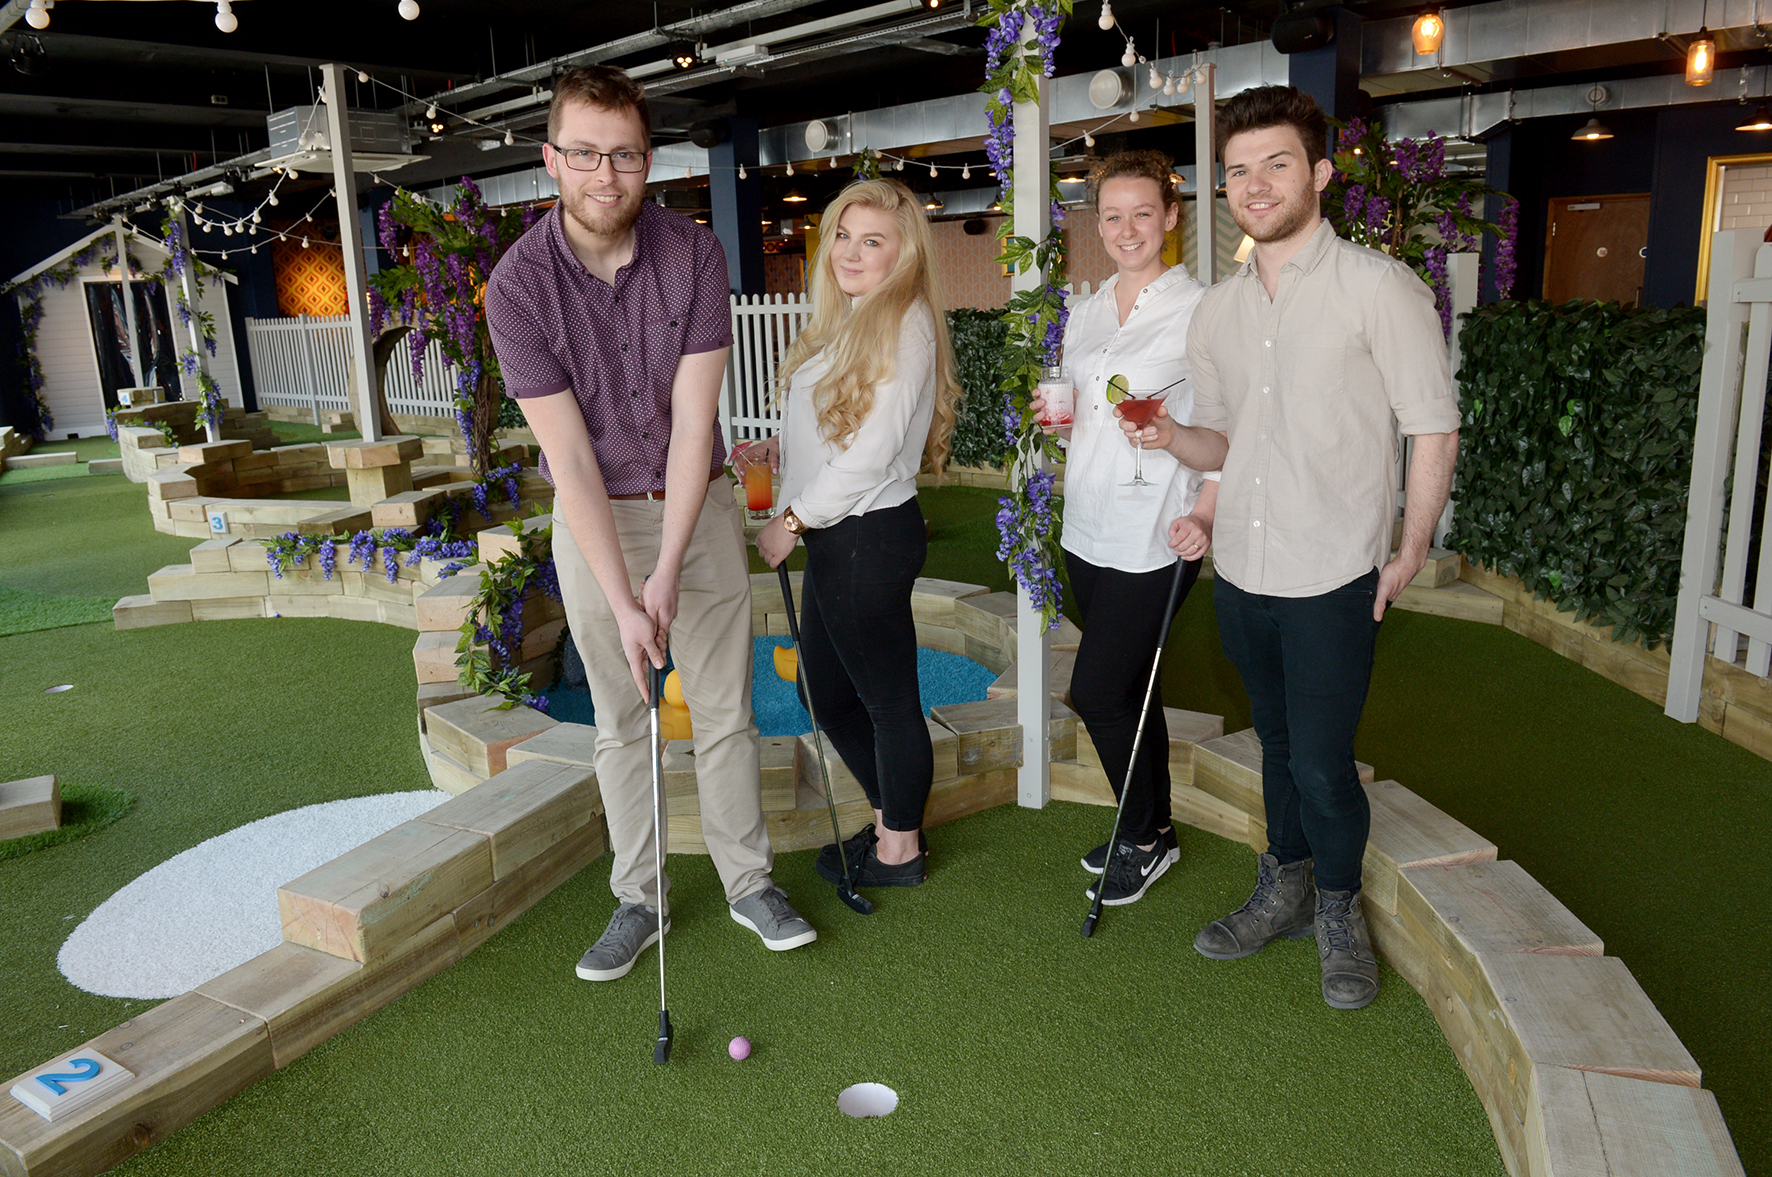 George Bejko-Cowlbeck with Staff - Riley Bennett,  Charlotte Doyle-Godfrey, Aaron Fleming..Caddies, 12 London Road, Southend about WHSmith  has opened- crazy golf restaurant!.